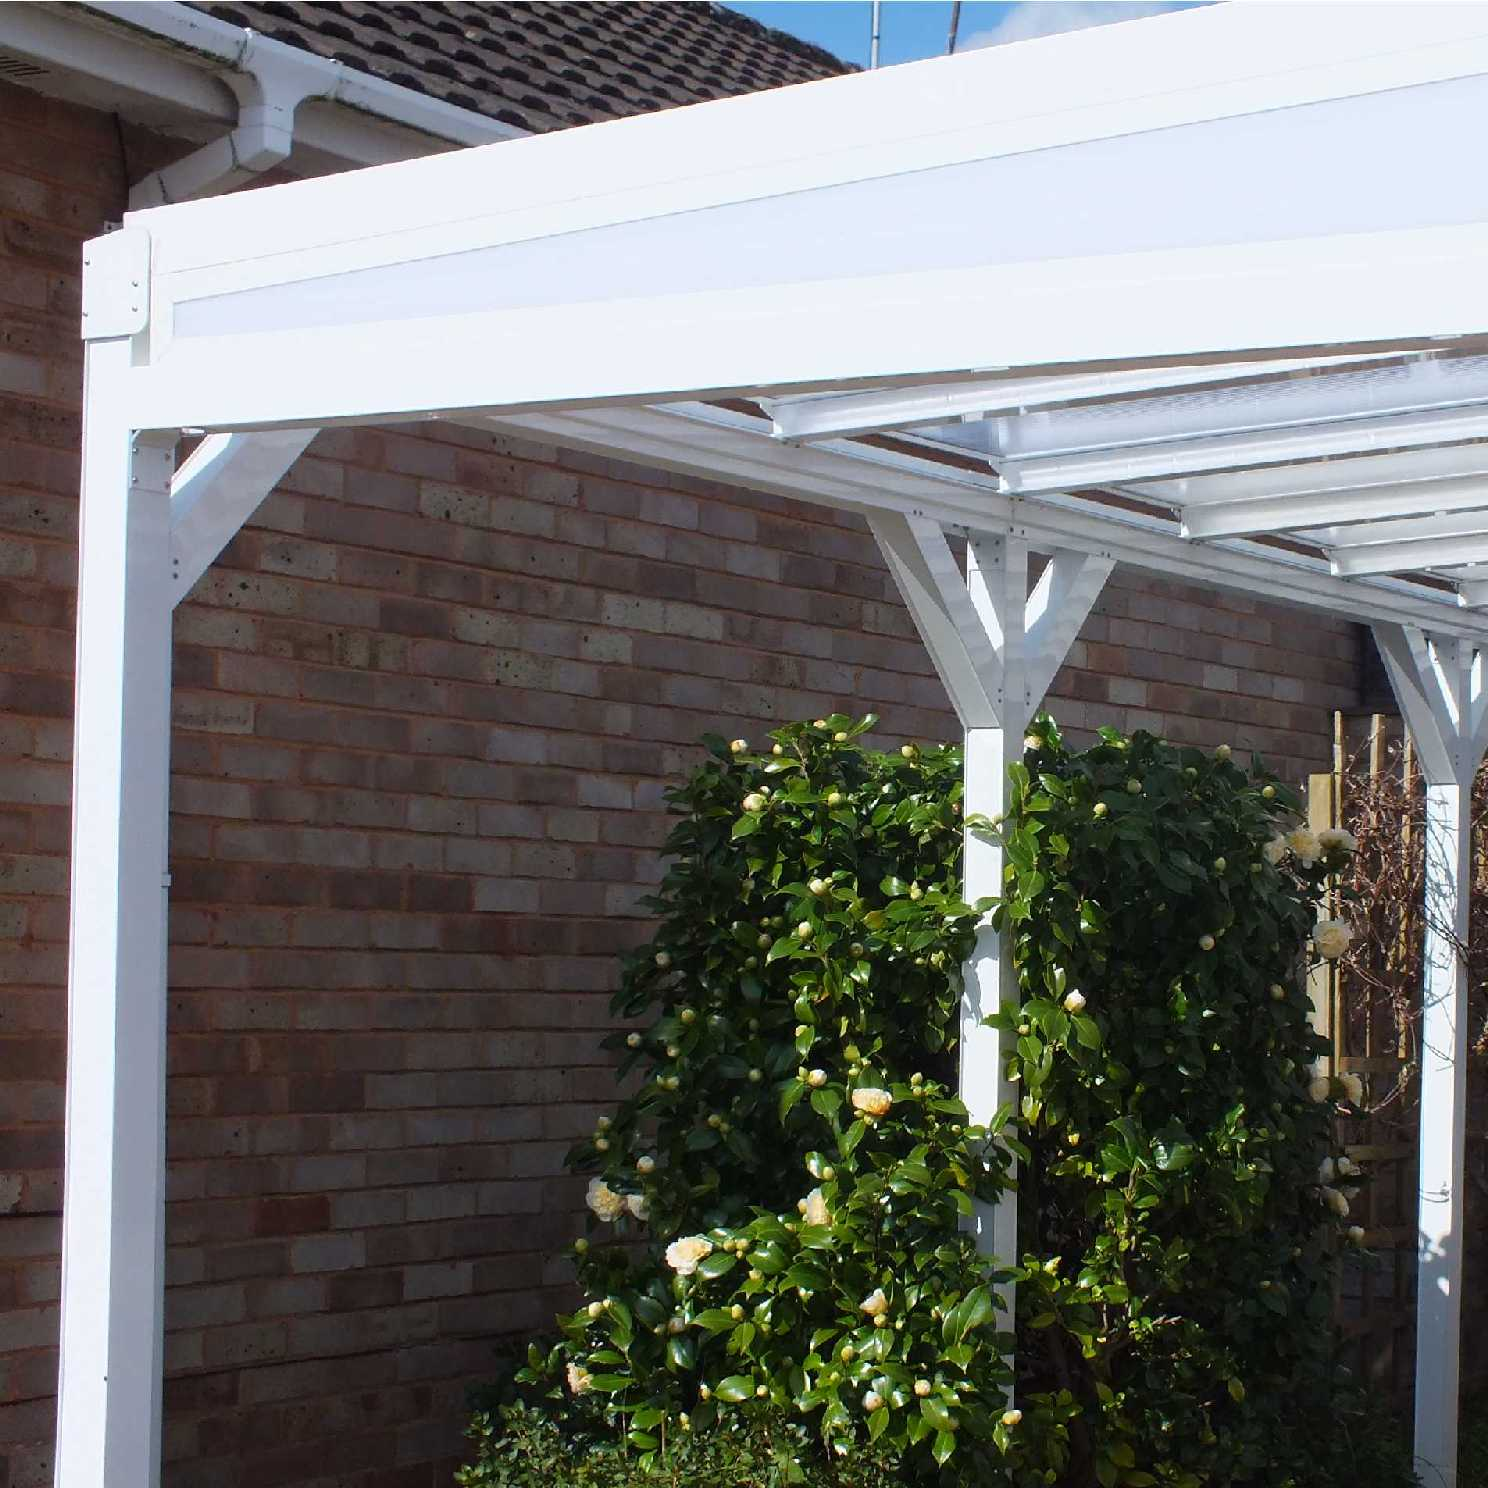 Omega Smart White Lean-To Canopy with 16mm Polycarbonate Glazing - 7.0m (W) x 4.0m (P), (4) Supporting Posts from Omega Build